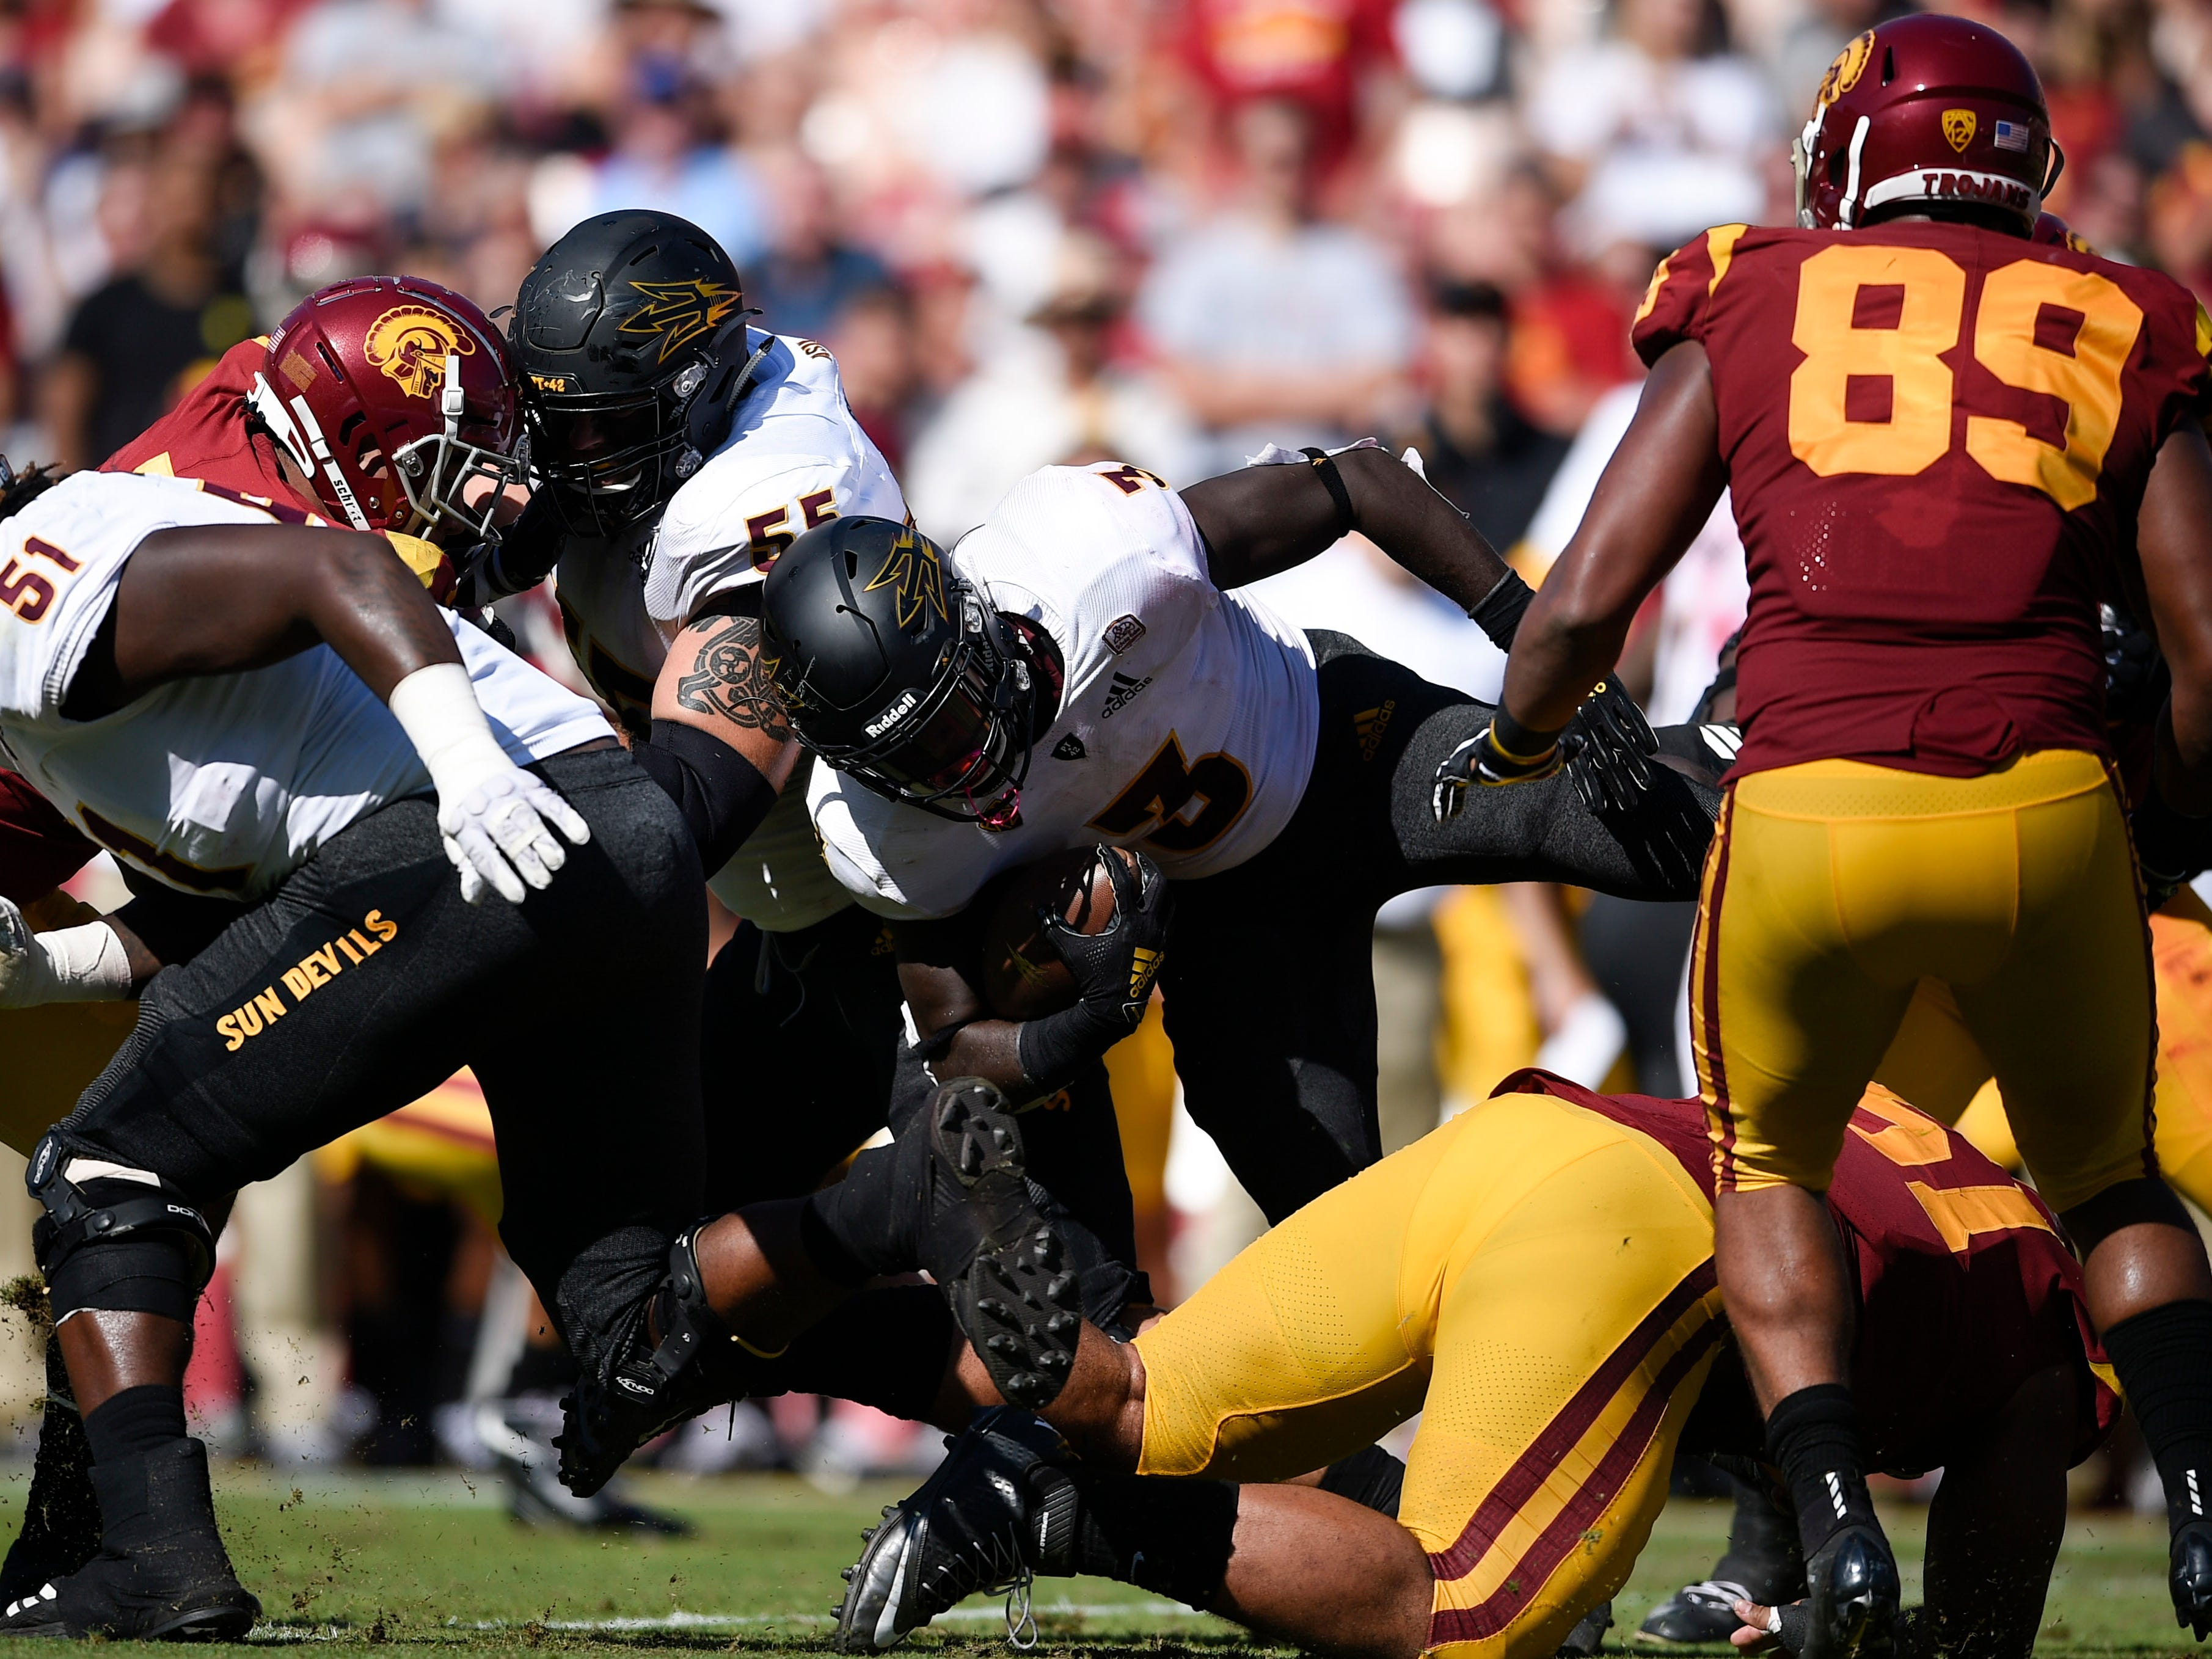 Oct 27, 2018; Los Angeles, CA, USA; Arizona State Sun Devils running back Eno Benjamin (3) runs the ball during the first half against the Southern California Trojans at Los Angeles Memorial Coliseum. Mandatory Credit: Kelvin Kuo-USA TODAY Sports